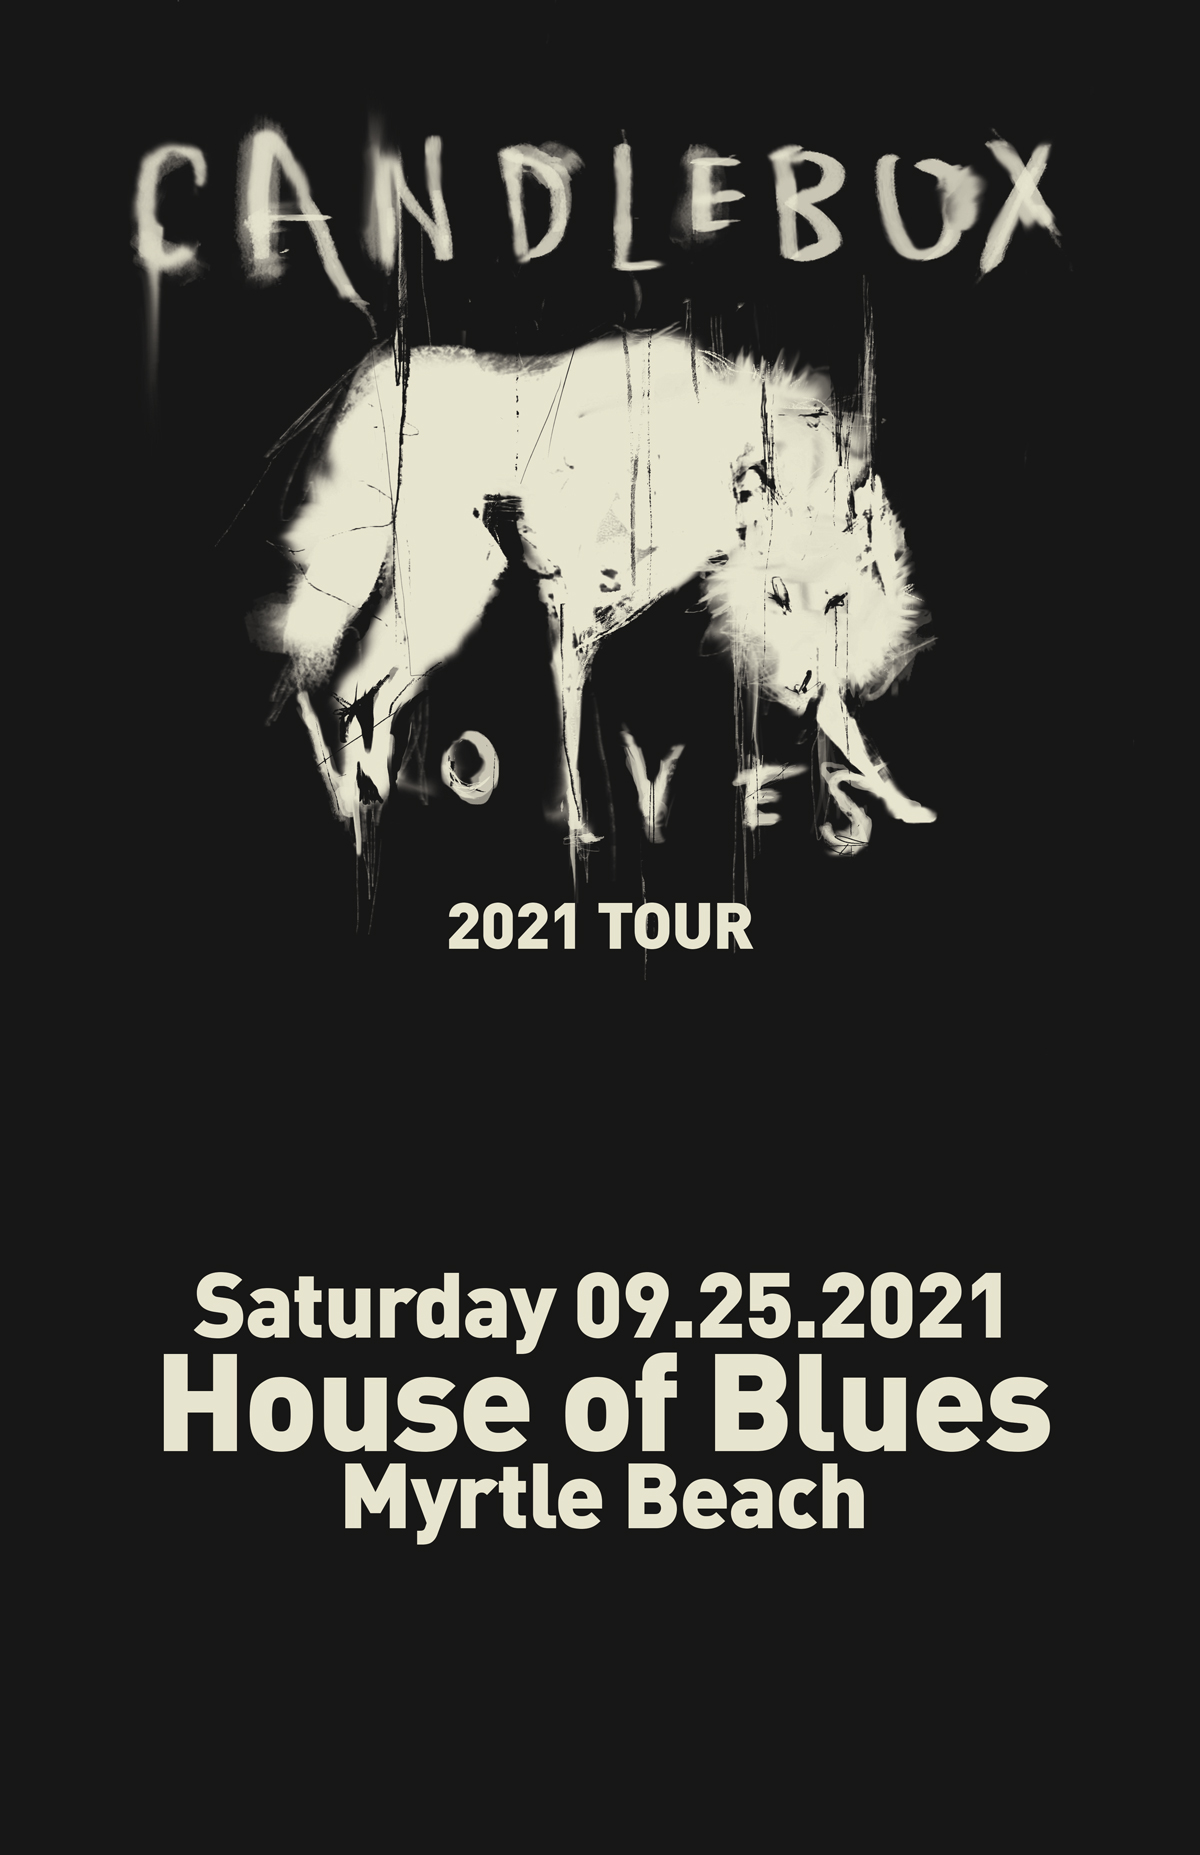 Candlebox: Wolves Tour 2021@ House of Blues, Myrtle Beach